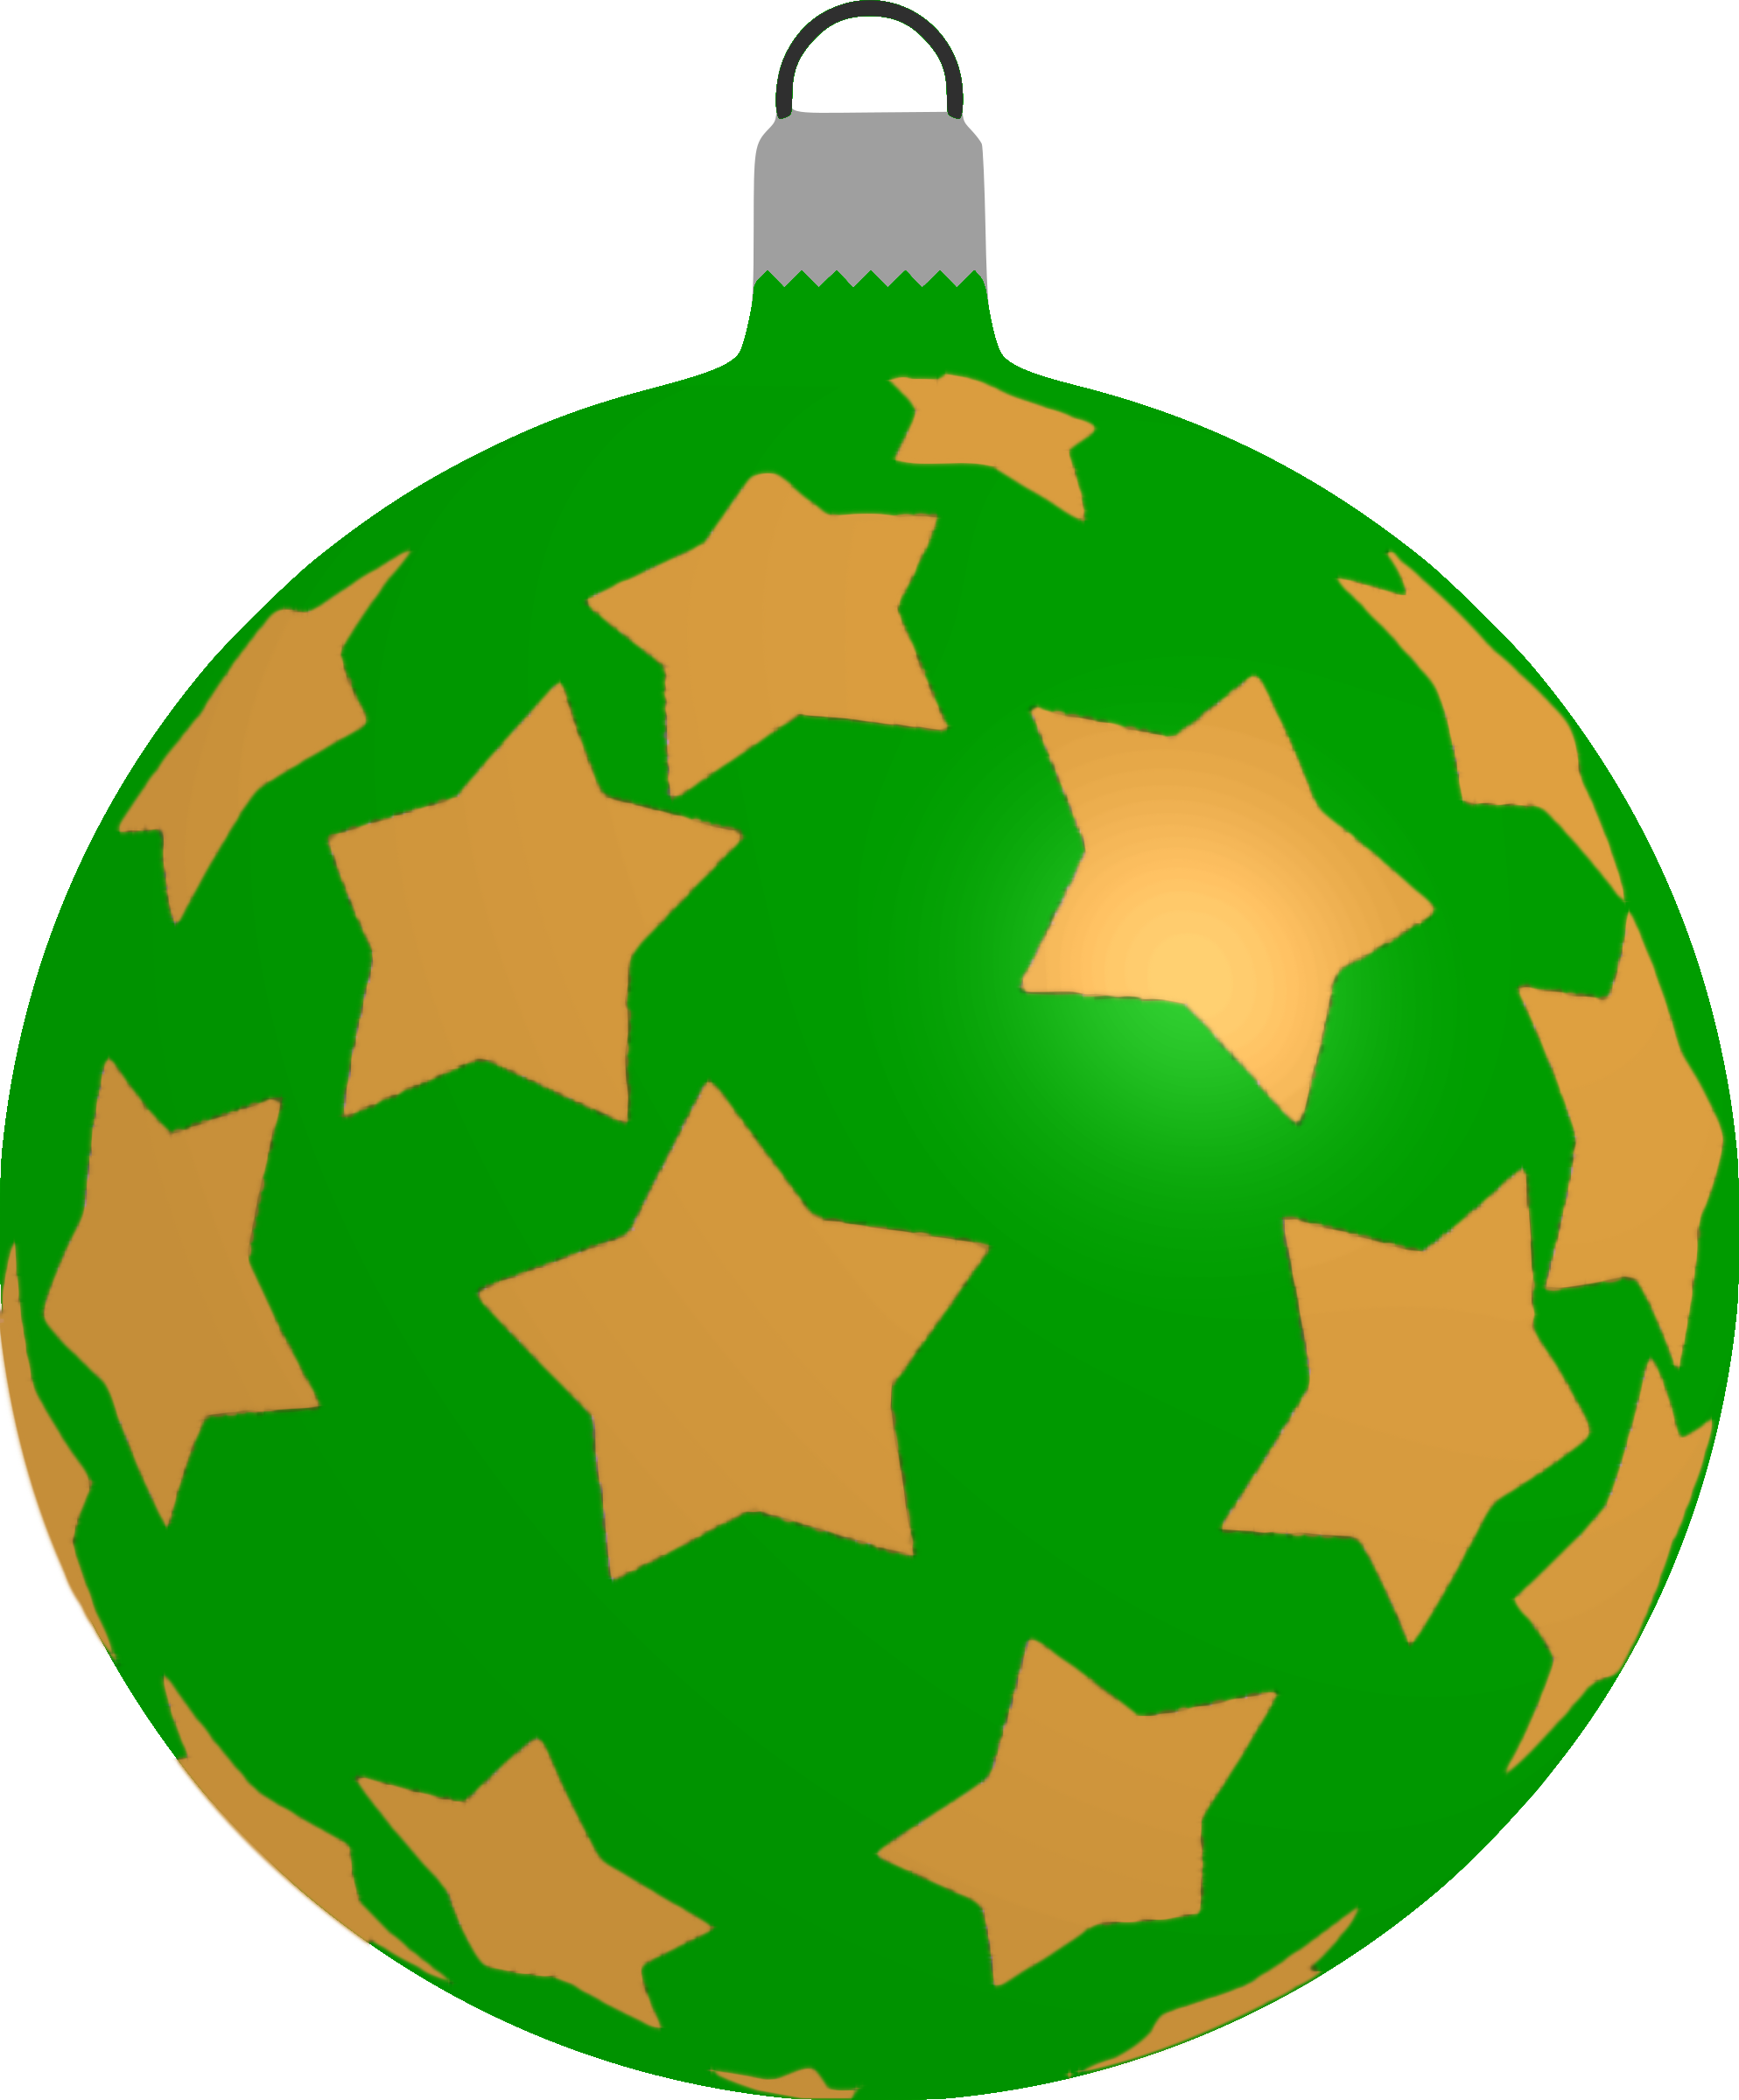 Clipart Patterned Bauble 5 Green